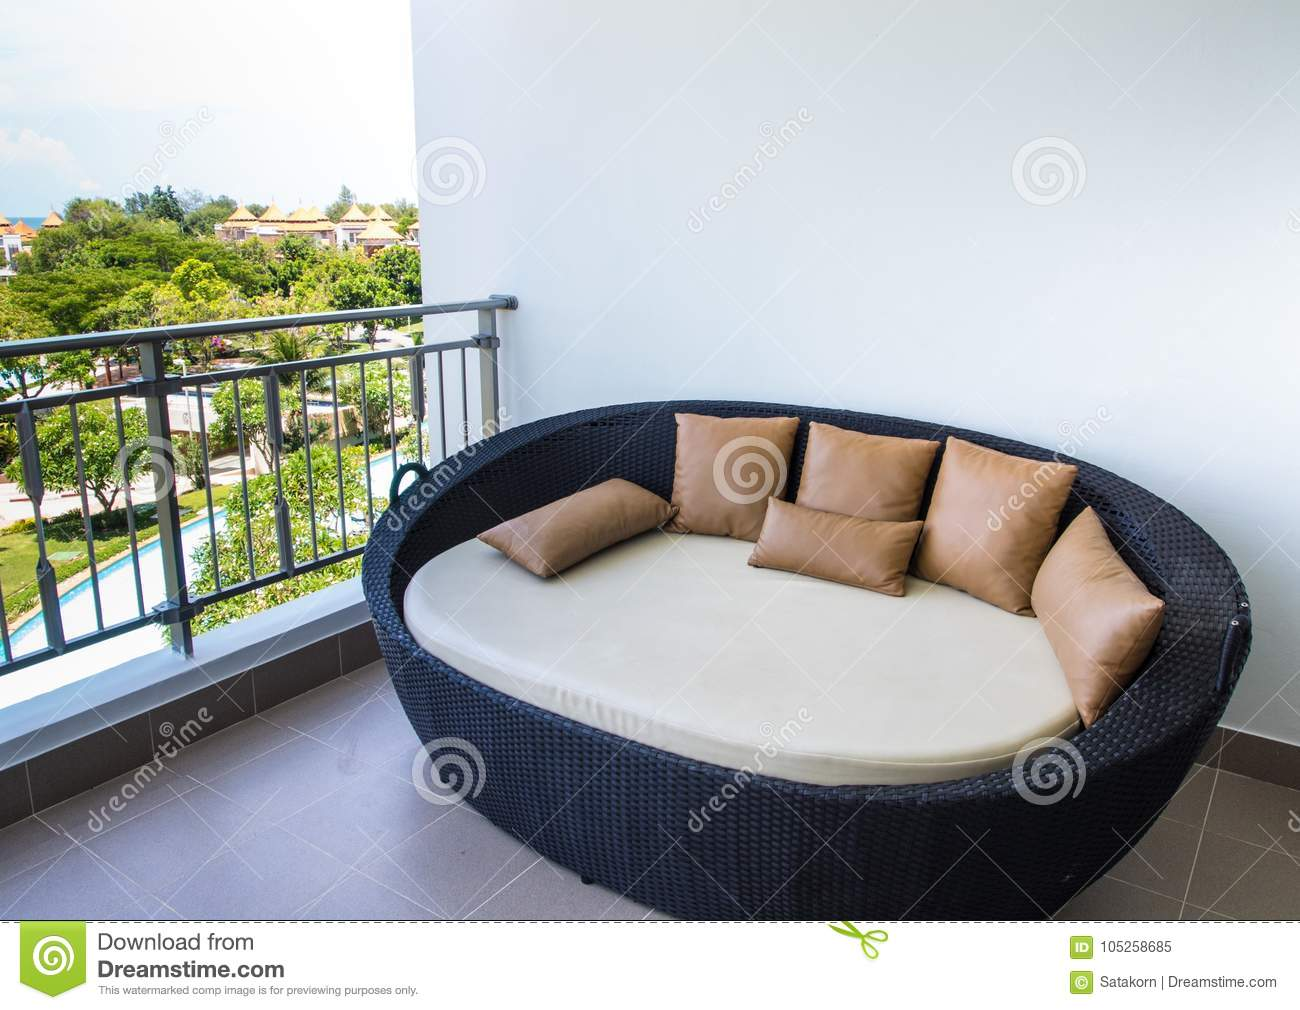 Waterproof Outdoor Daybed At The Balcony Stock Image Image Of Balcony Beautiful 105258685